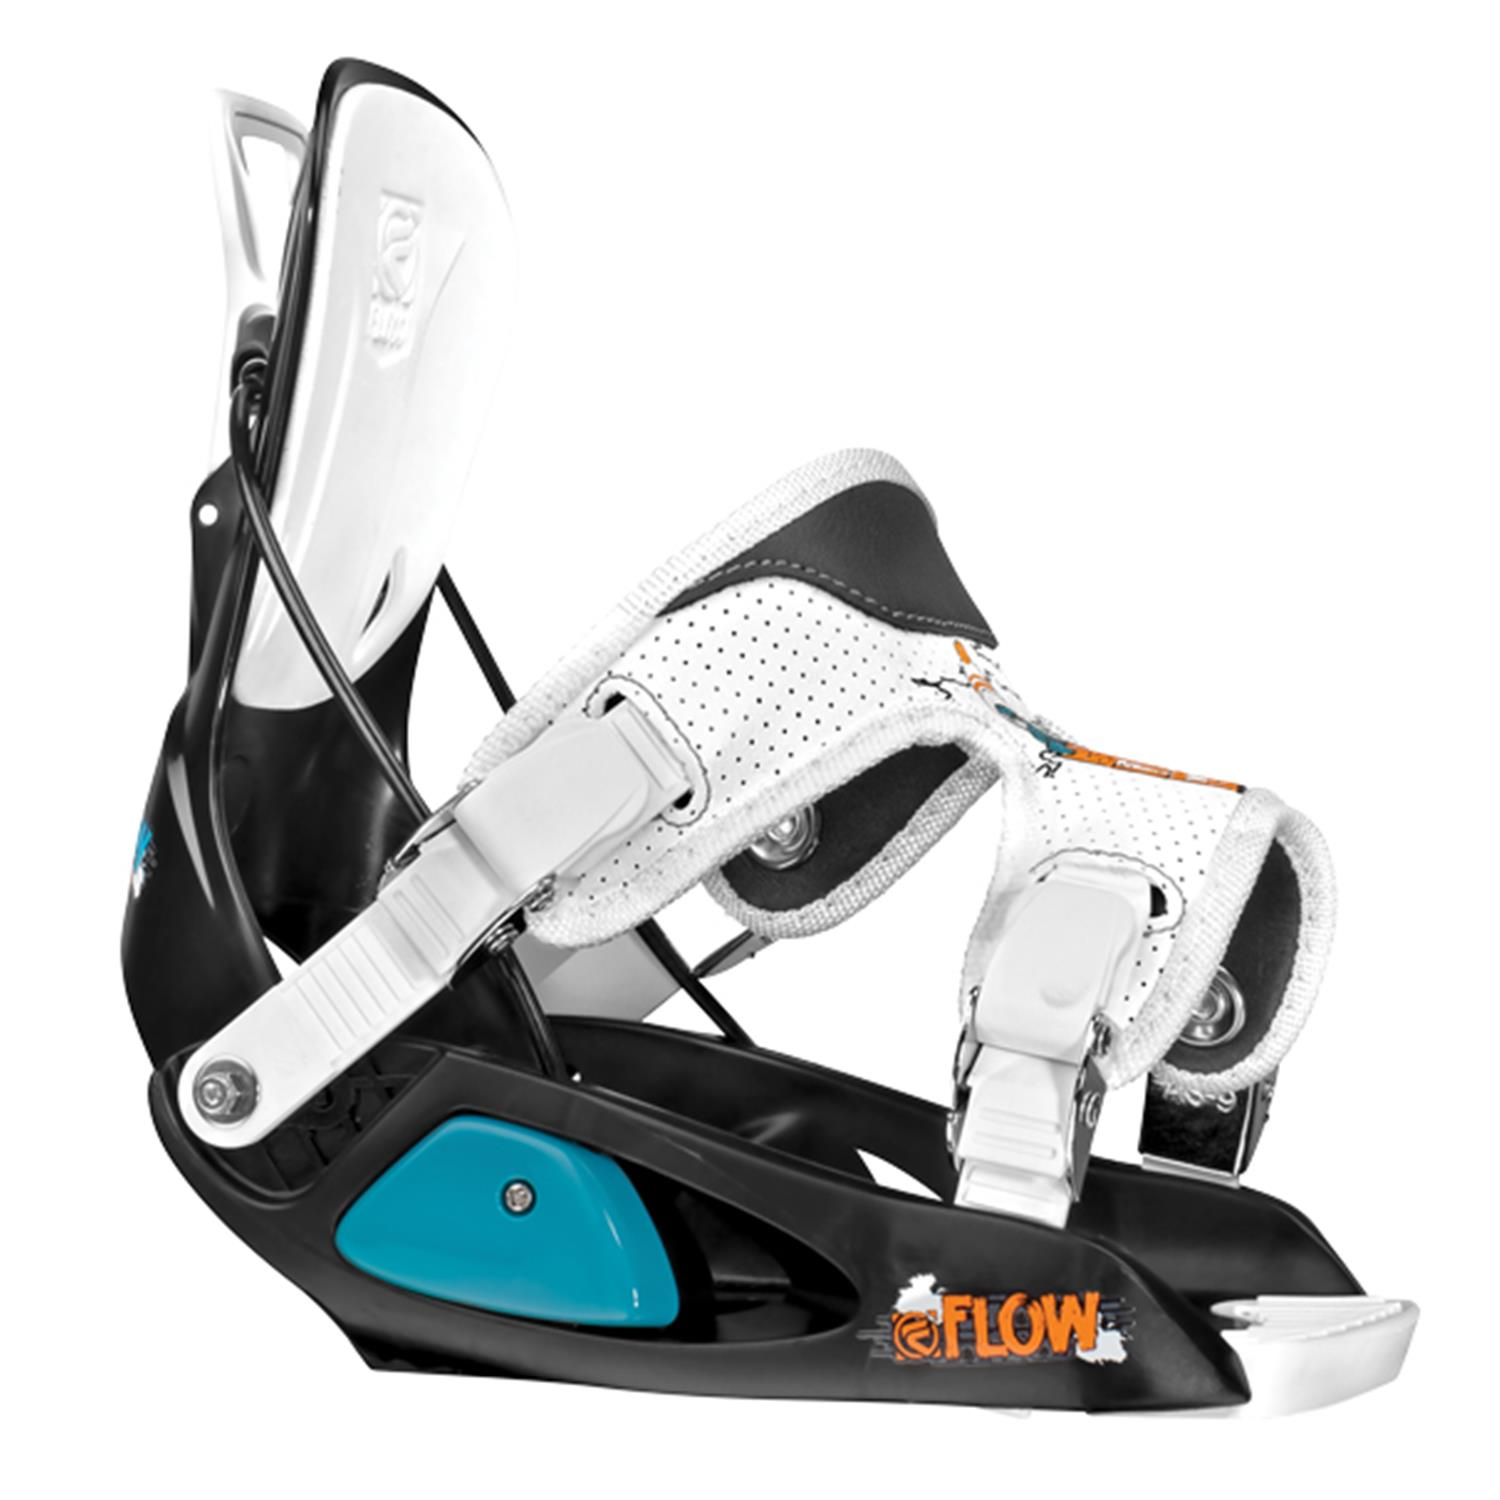 Flow Micron Mini Snowboard + Micron Bindings